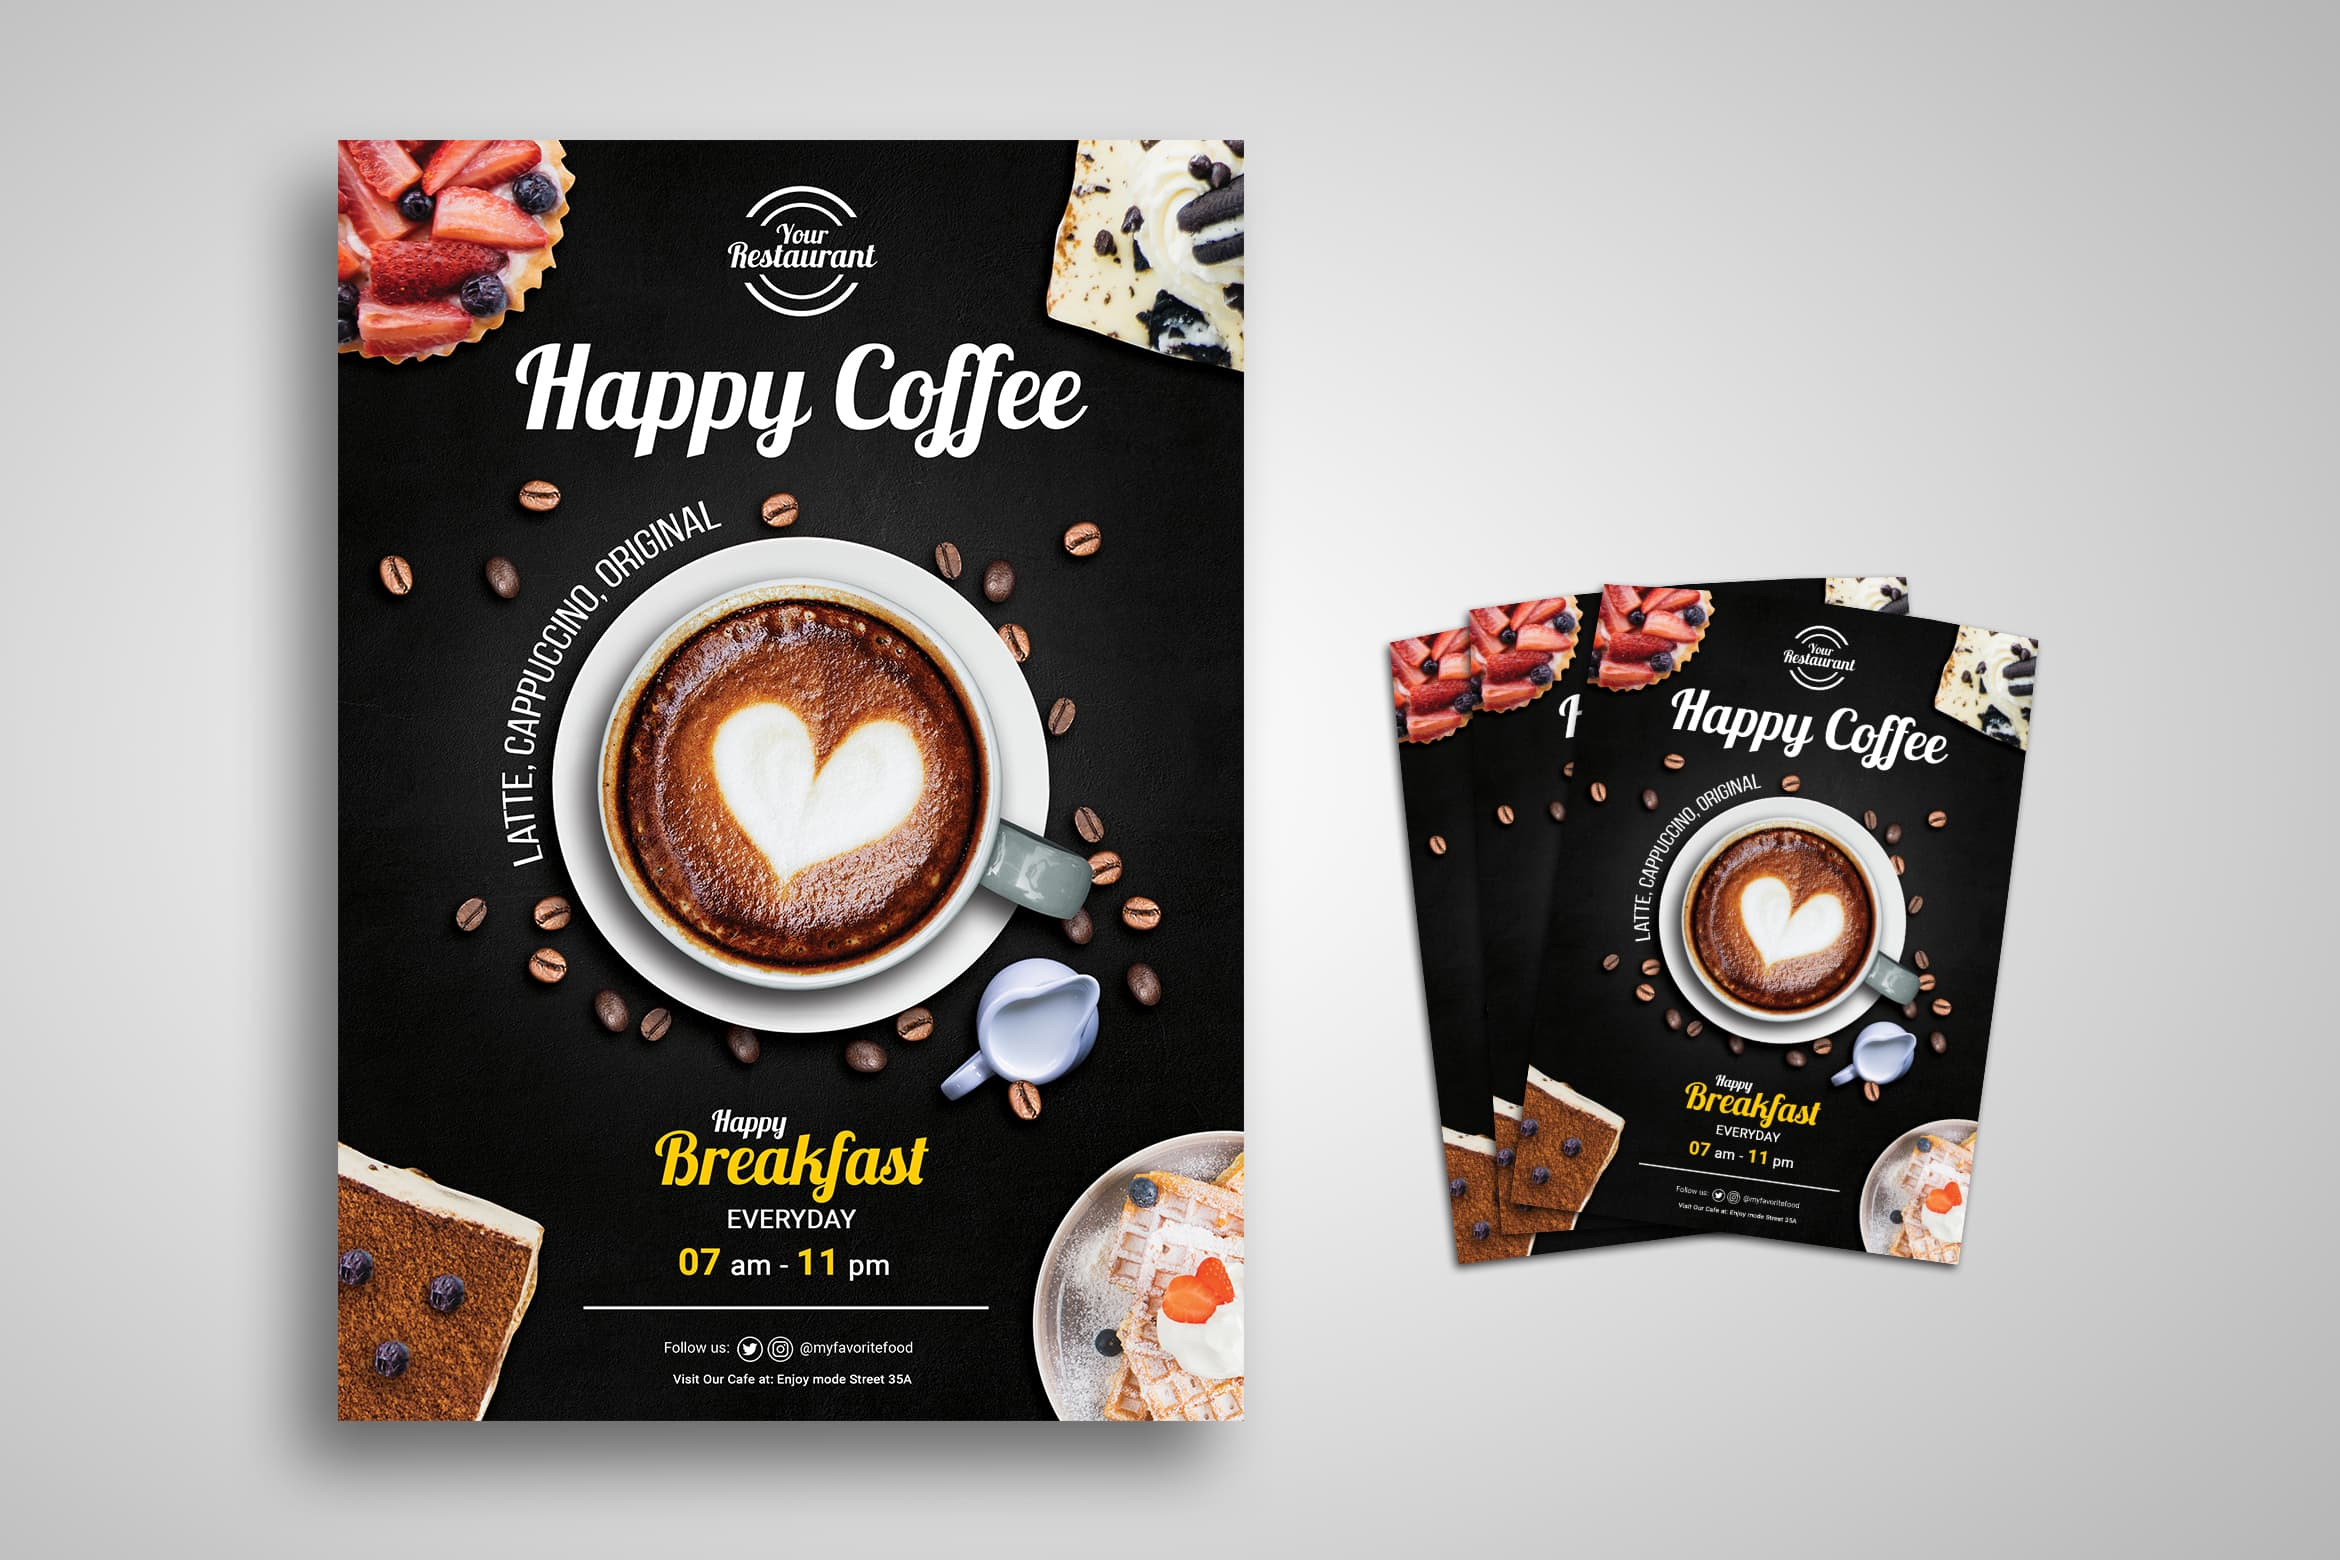 Flyer Template - Happy Coffee